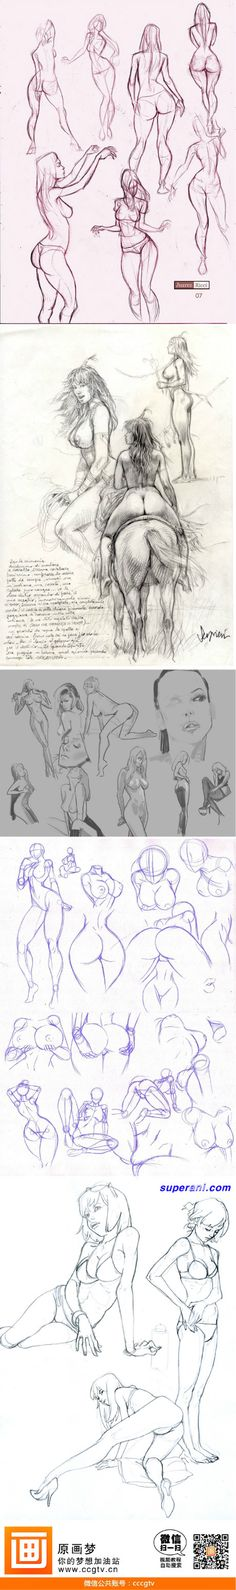 How to draw a woman riding a horse - drawing reference - human anatomy Body Drawing, Anatomy Drawing, Human Anatomy, Female Drawing, Drawing Sketches, Art Drawings, Sketching, Serpieri, Poses References